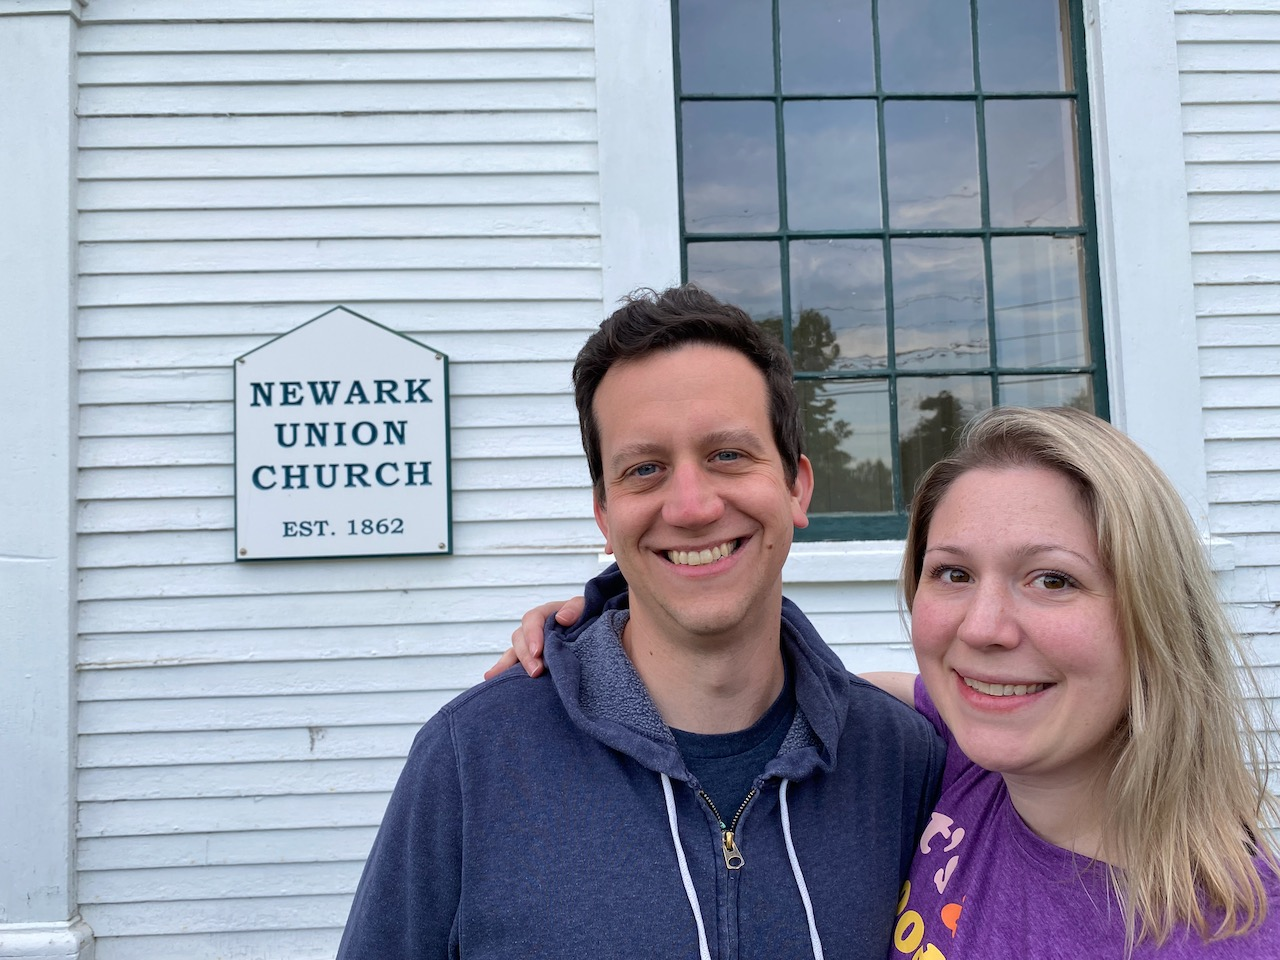 Me and Andrea in front of the Newark Union Church